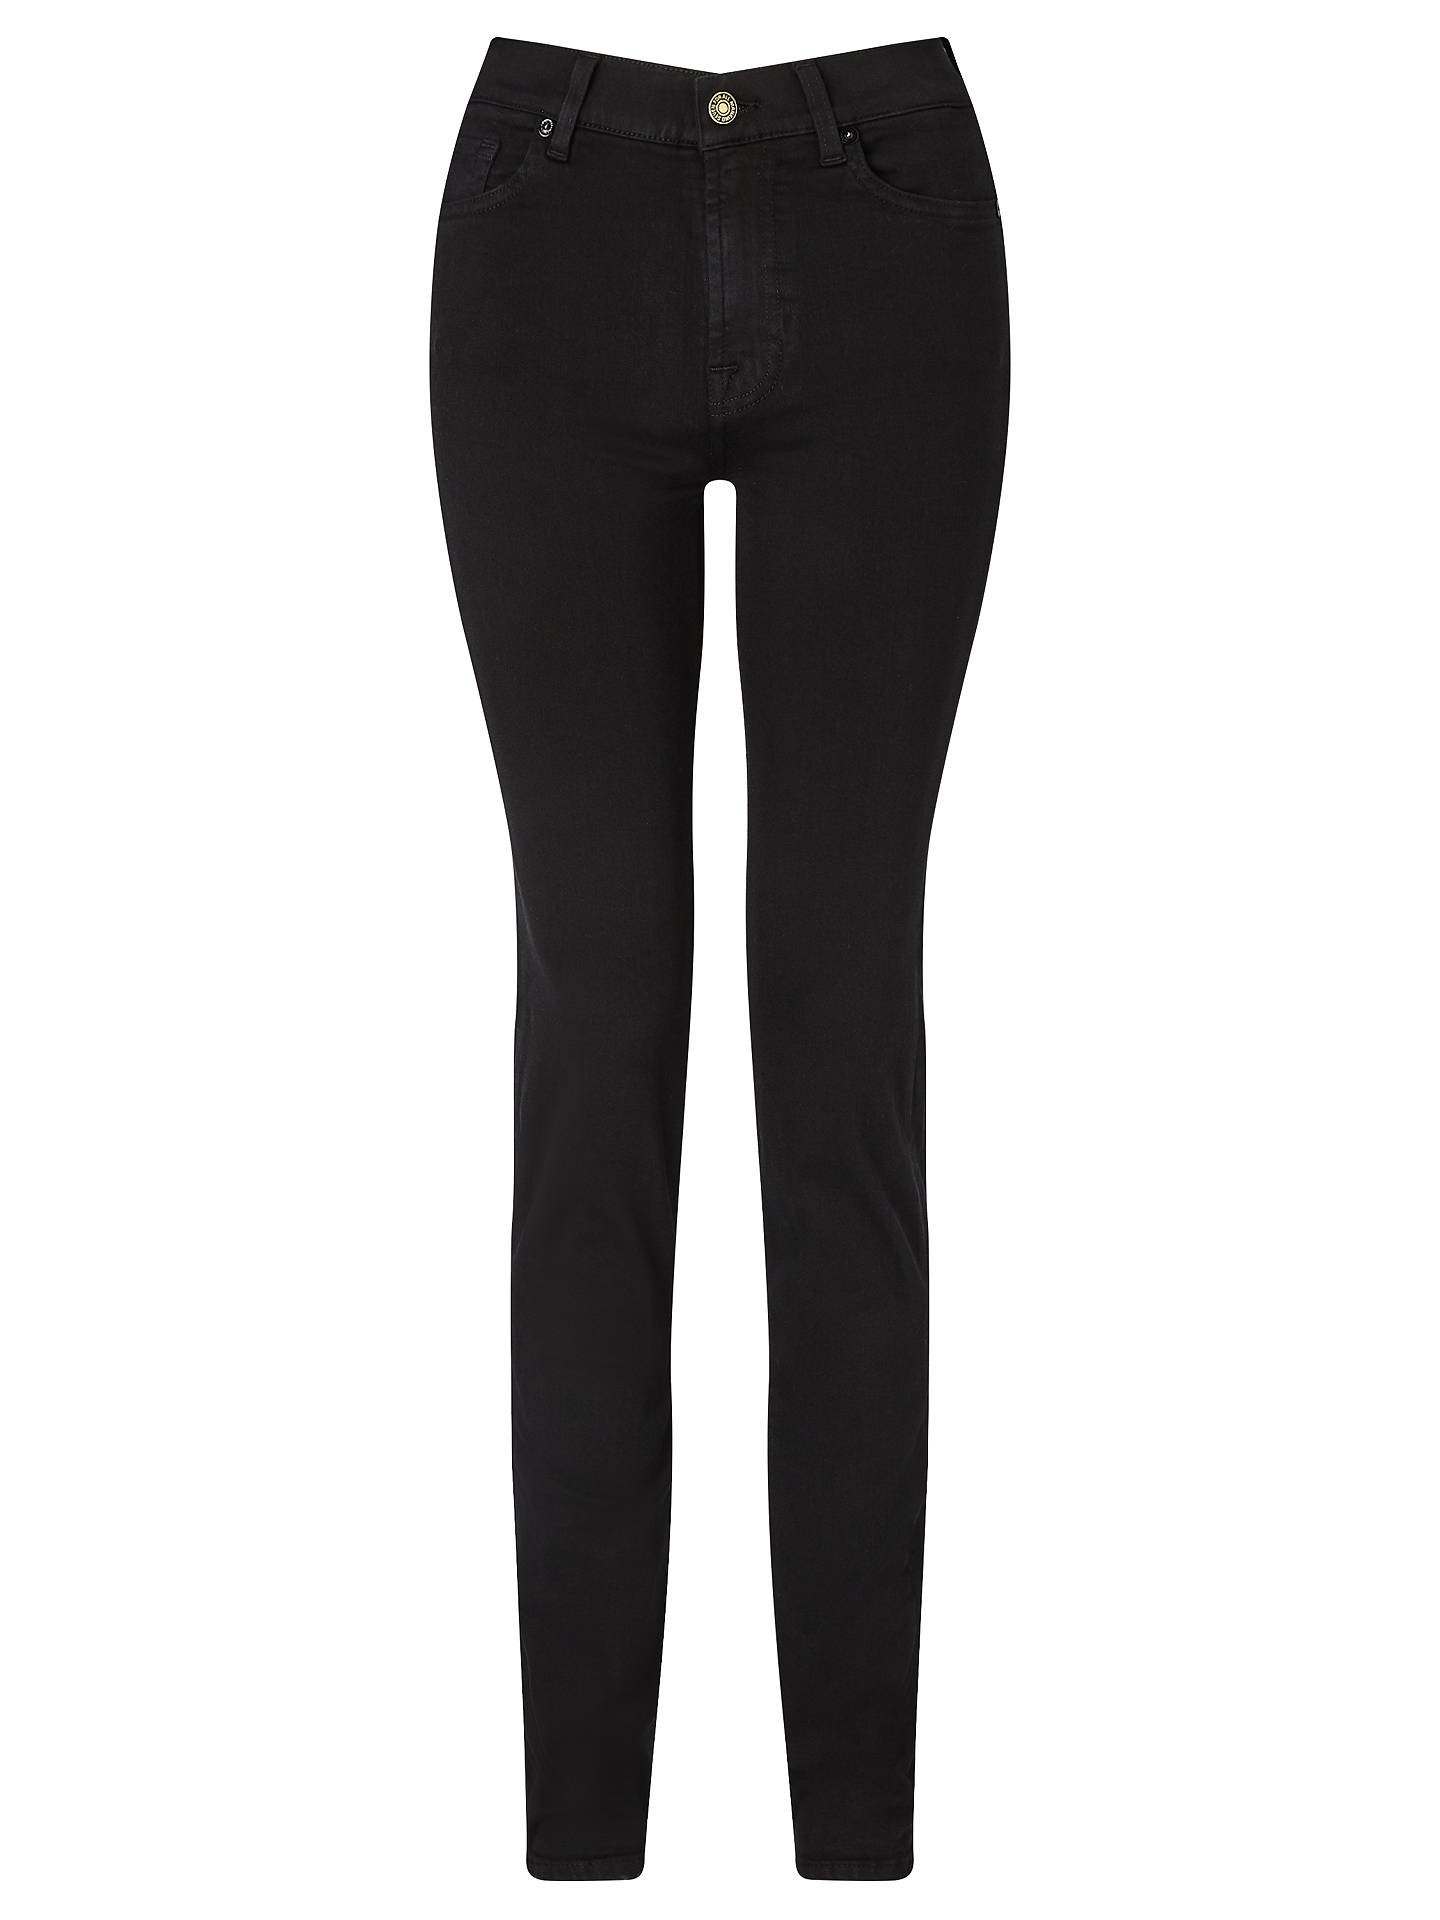 Buy7 For All Mankind Rozie High Rise Slim Illusion Straight Leg Jeans, Black, 26 Online at johnlewis.com